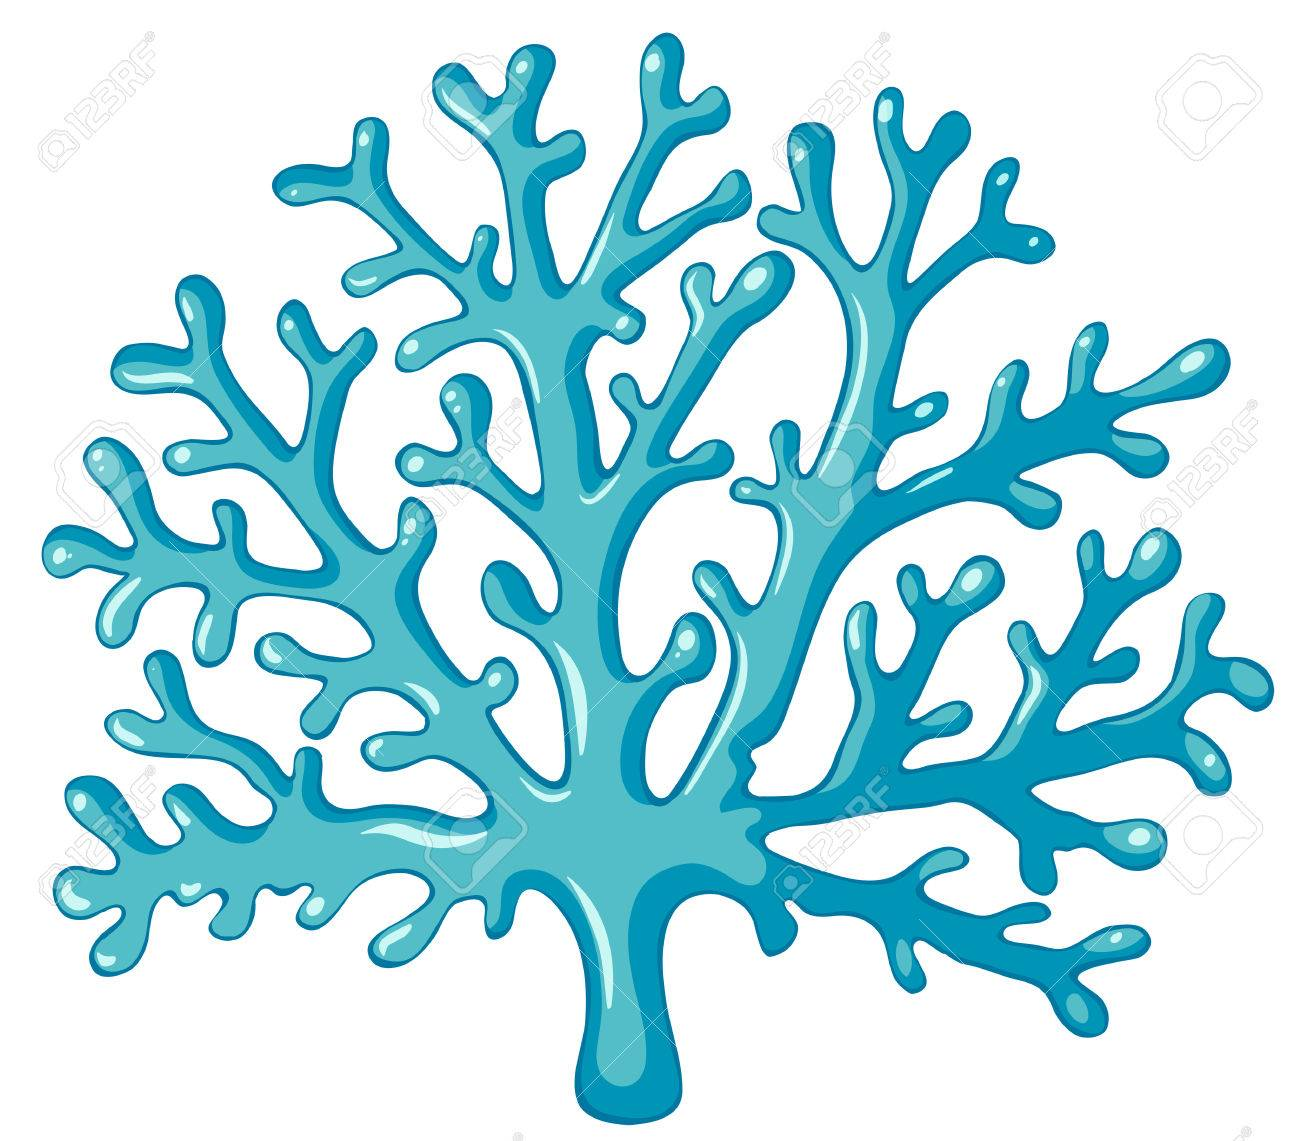 blue coral on white background illustration royalty free cliparts rh 123rf com corel clipart free coral clipart images